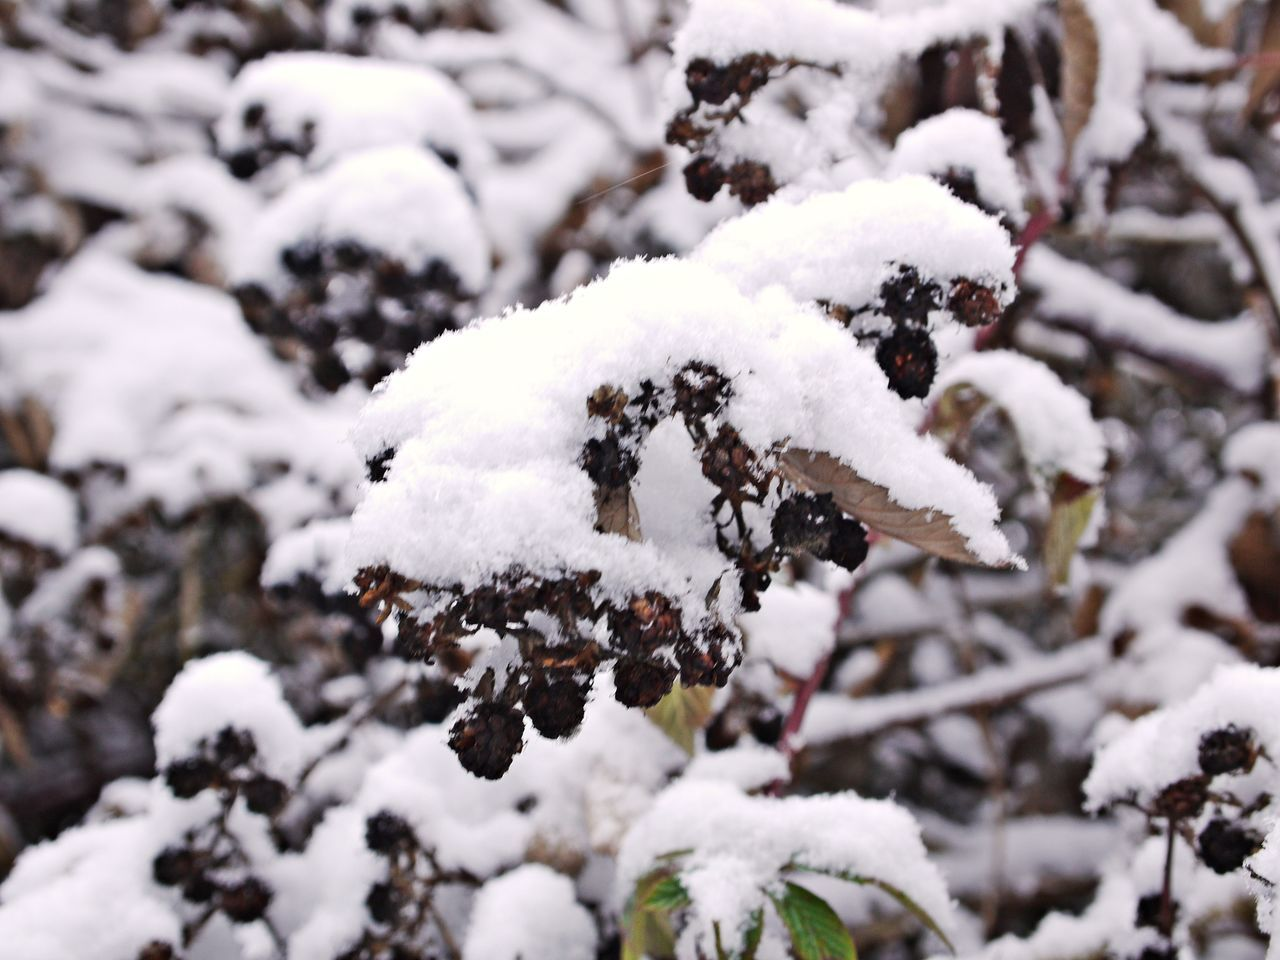 Beauty In Nature Blackberries Close-up Cold Temperature Day Dry Fruits Focus On Foreground Frozen Frozen Fruits Nature No People Outdoors Snow Weather White Color Winter